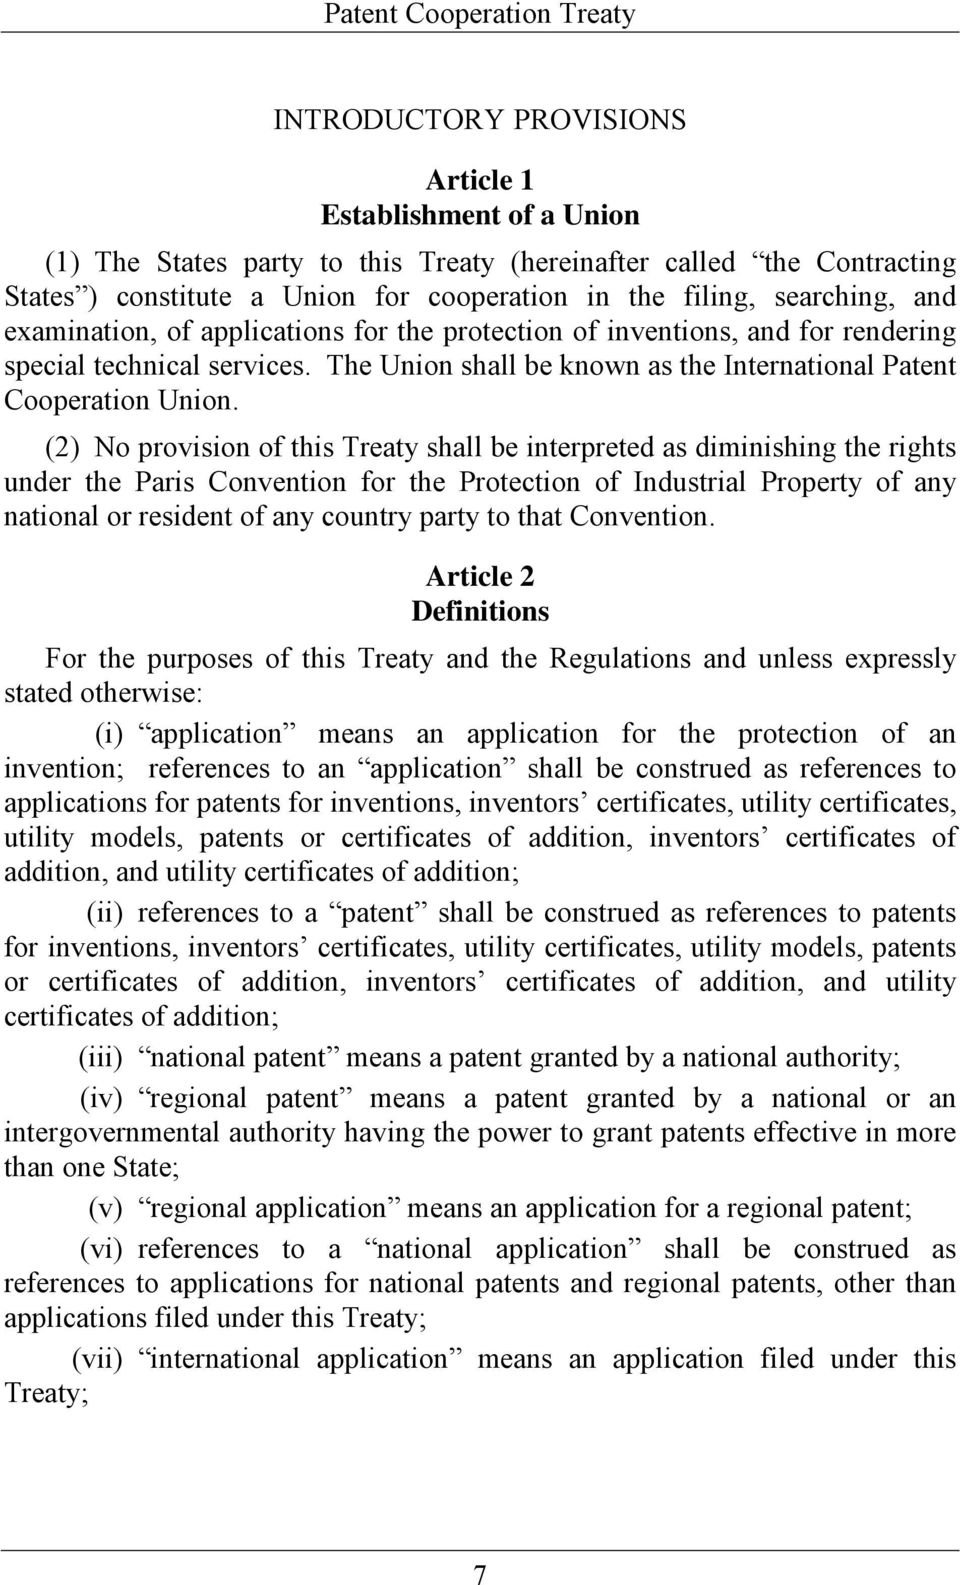 (2) No provision of this Treaty shall be interpreted as diminishing the rights under the Paris Convention for the Protection of Industrial Property of any national or resident of any country party to